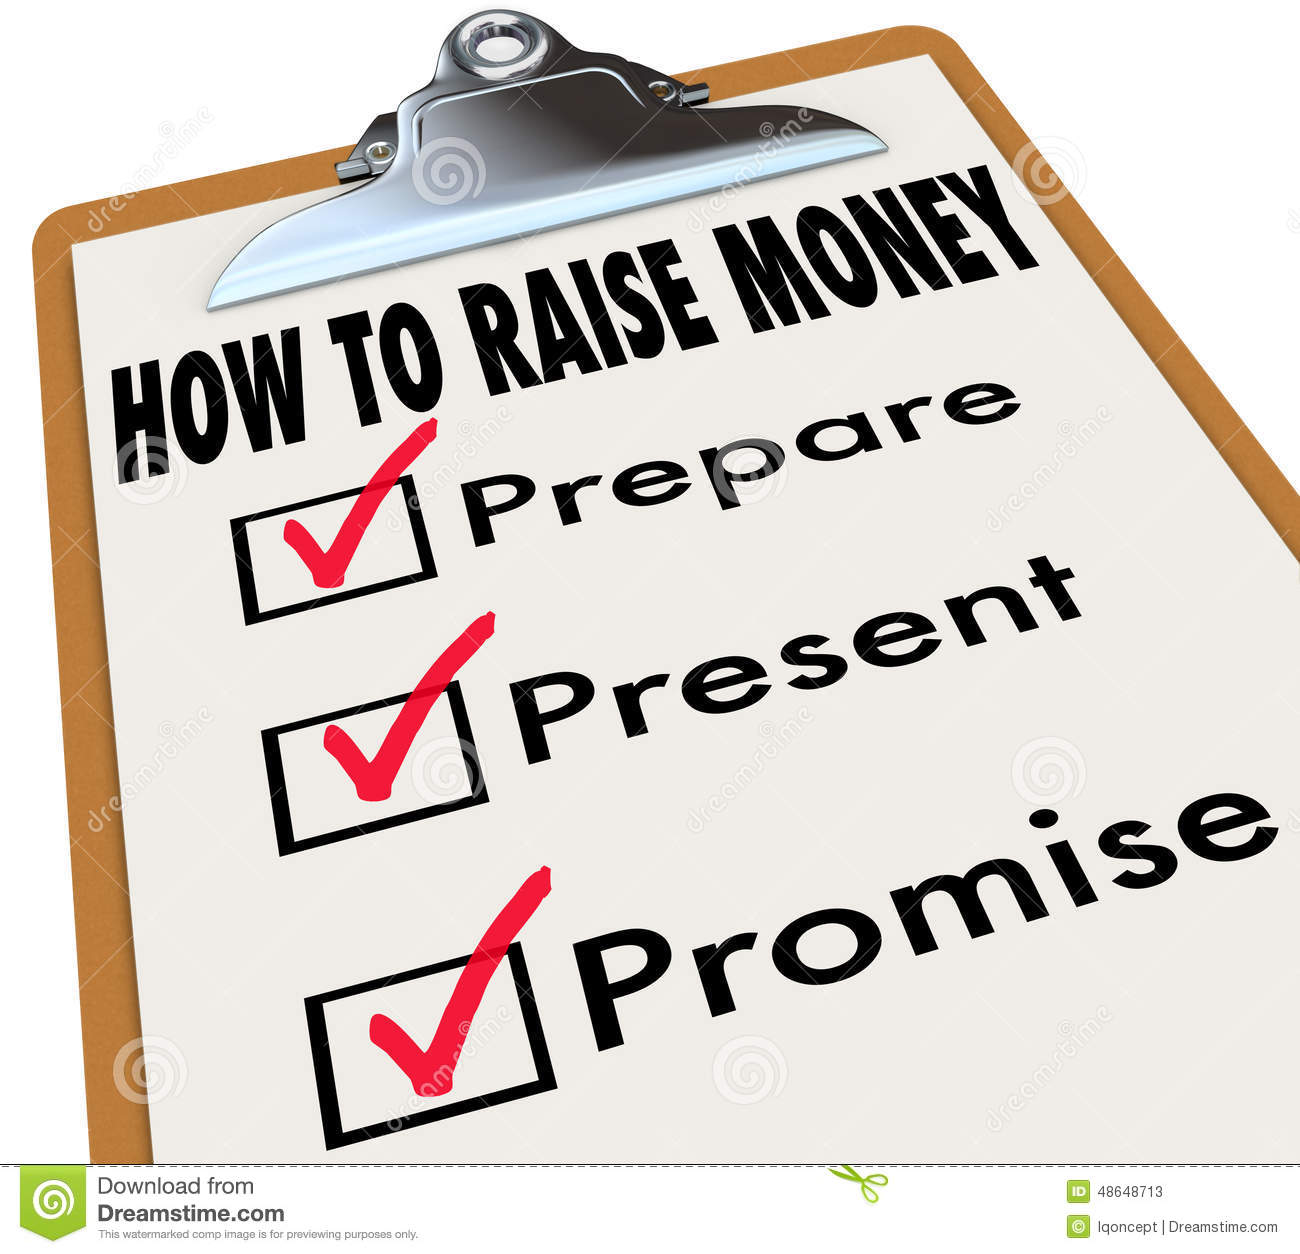 How To Raise Money Clipboard Checklist Venture Capital New. How Does Point Of Sale Systems Work. Phd Management Information Systems. Lowest Car Insurance Florida. Starting Salary Mechanical Engineer. Massachusetts Community Colleges. Az Skin And Cancer Center Attorney Norfolk Va. Laser Spine Surgery Houston Bulle Rock Homes. Windows Server 2008 Efs Wireless Network Test